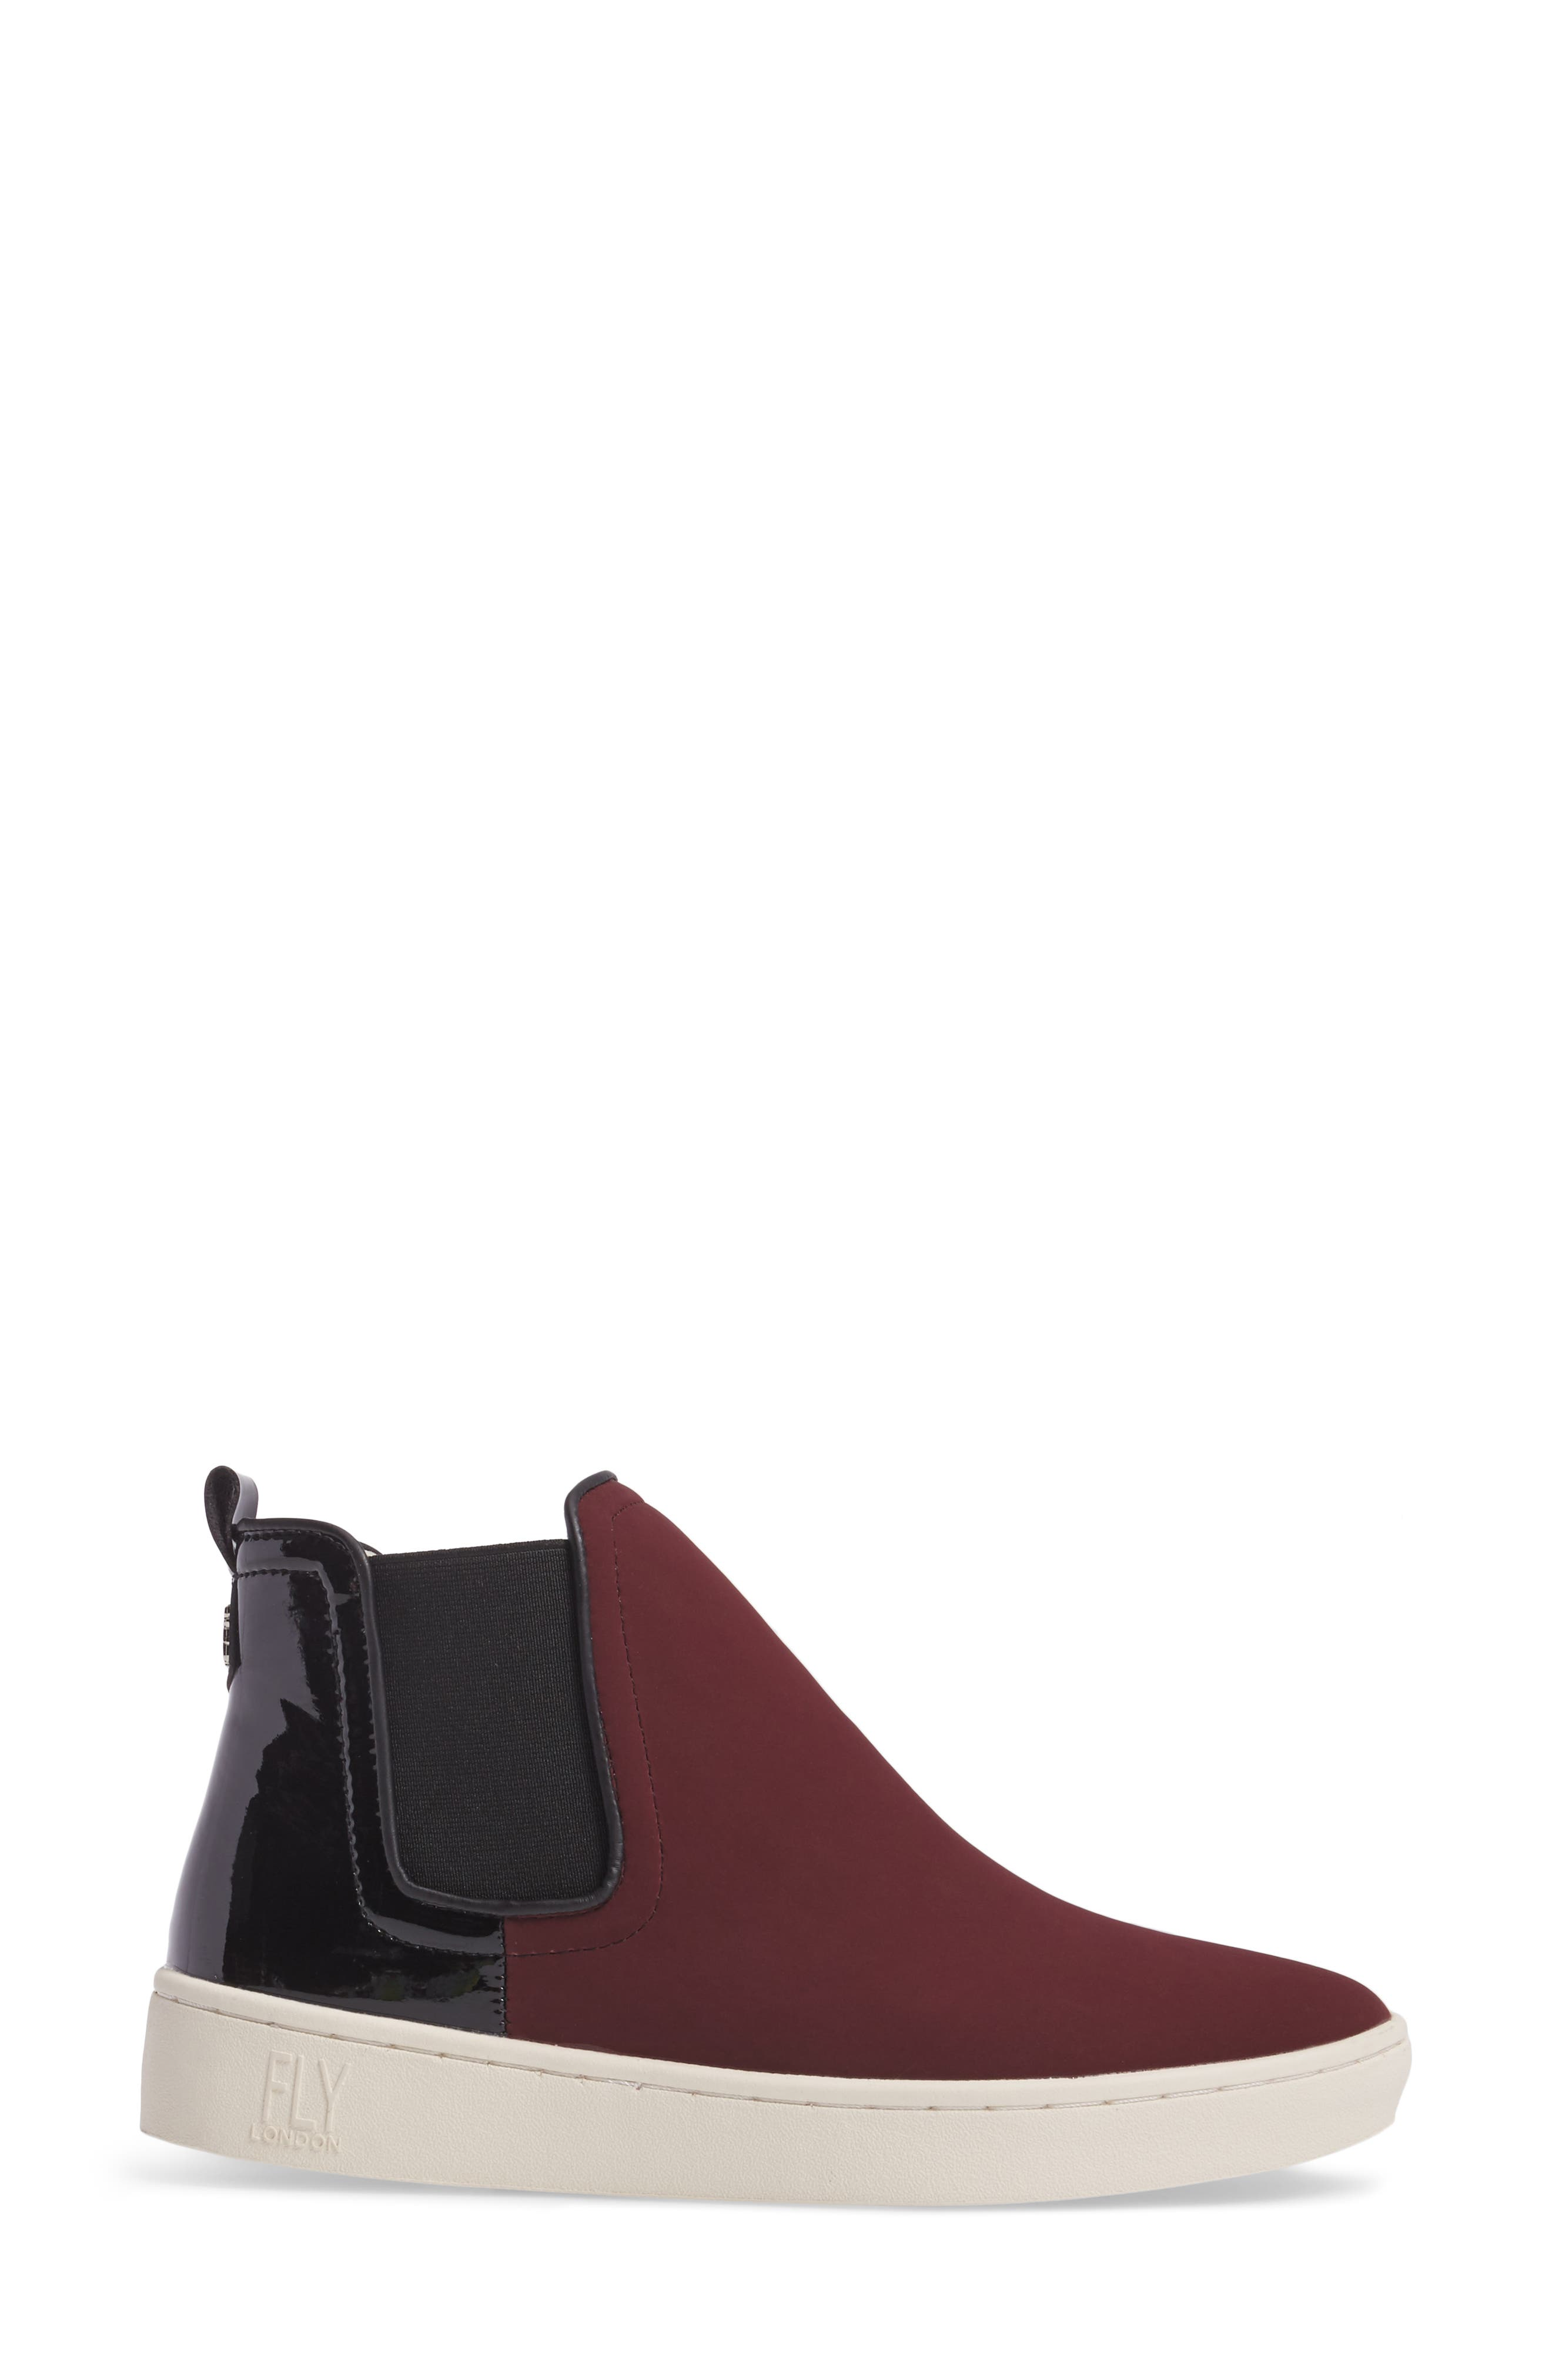 'Mabs' Slip-On Platform Sneaker,                             Alternate thumbnail 3, color,                             Bordeaux/ Black Leather